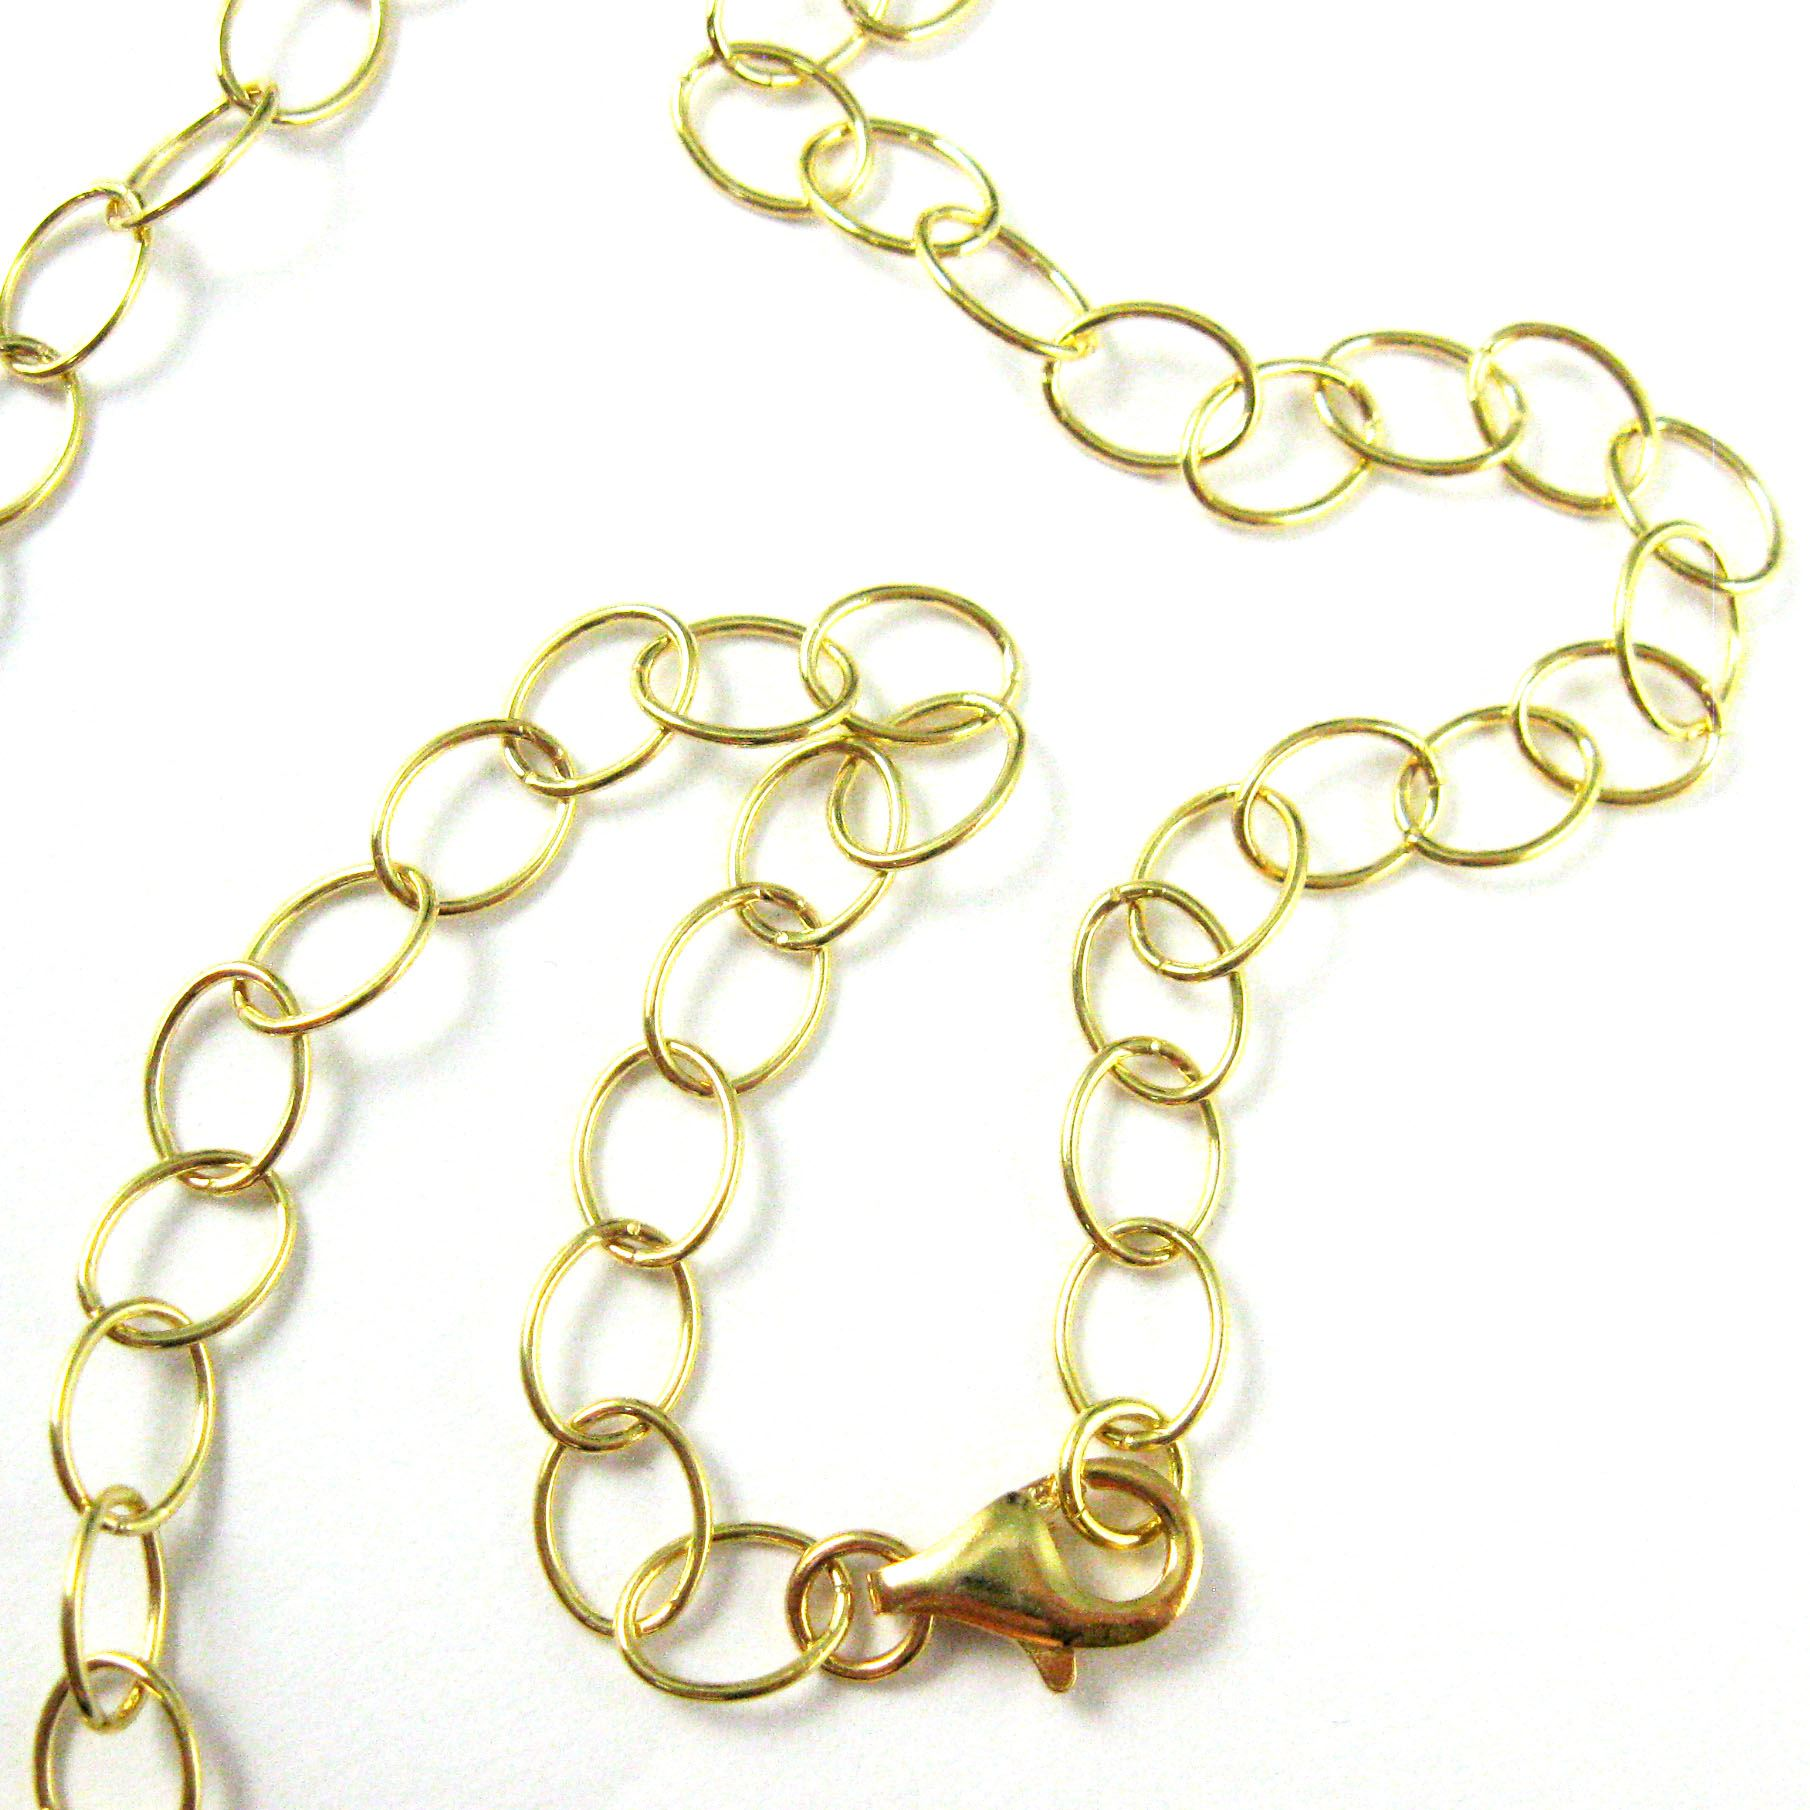 22K Gold plated Sterling Silver Vermeil Chain - 8x6mm Round Oval Cable -All Sizes